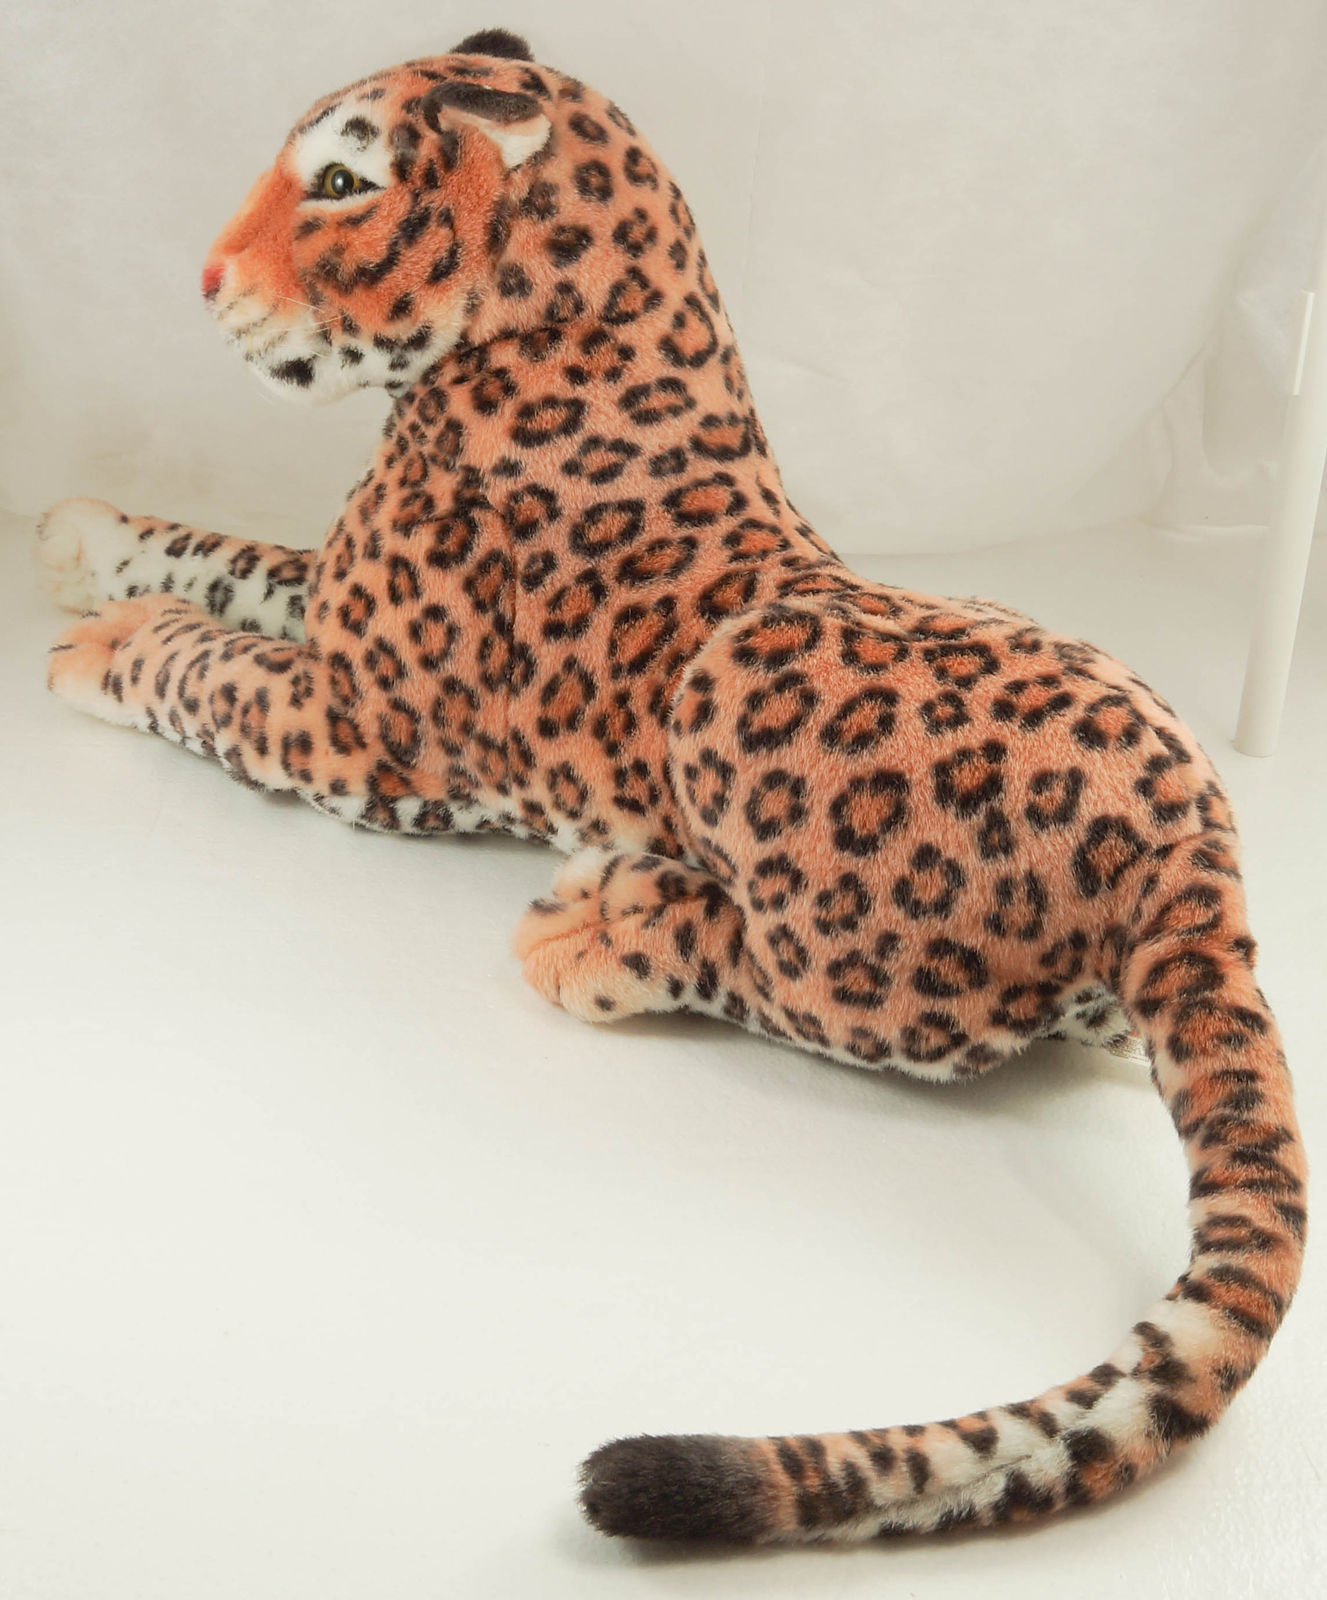 pin toy toys jaguar pobber by gid fuego hernandez signed jesse vinyl red knight